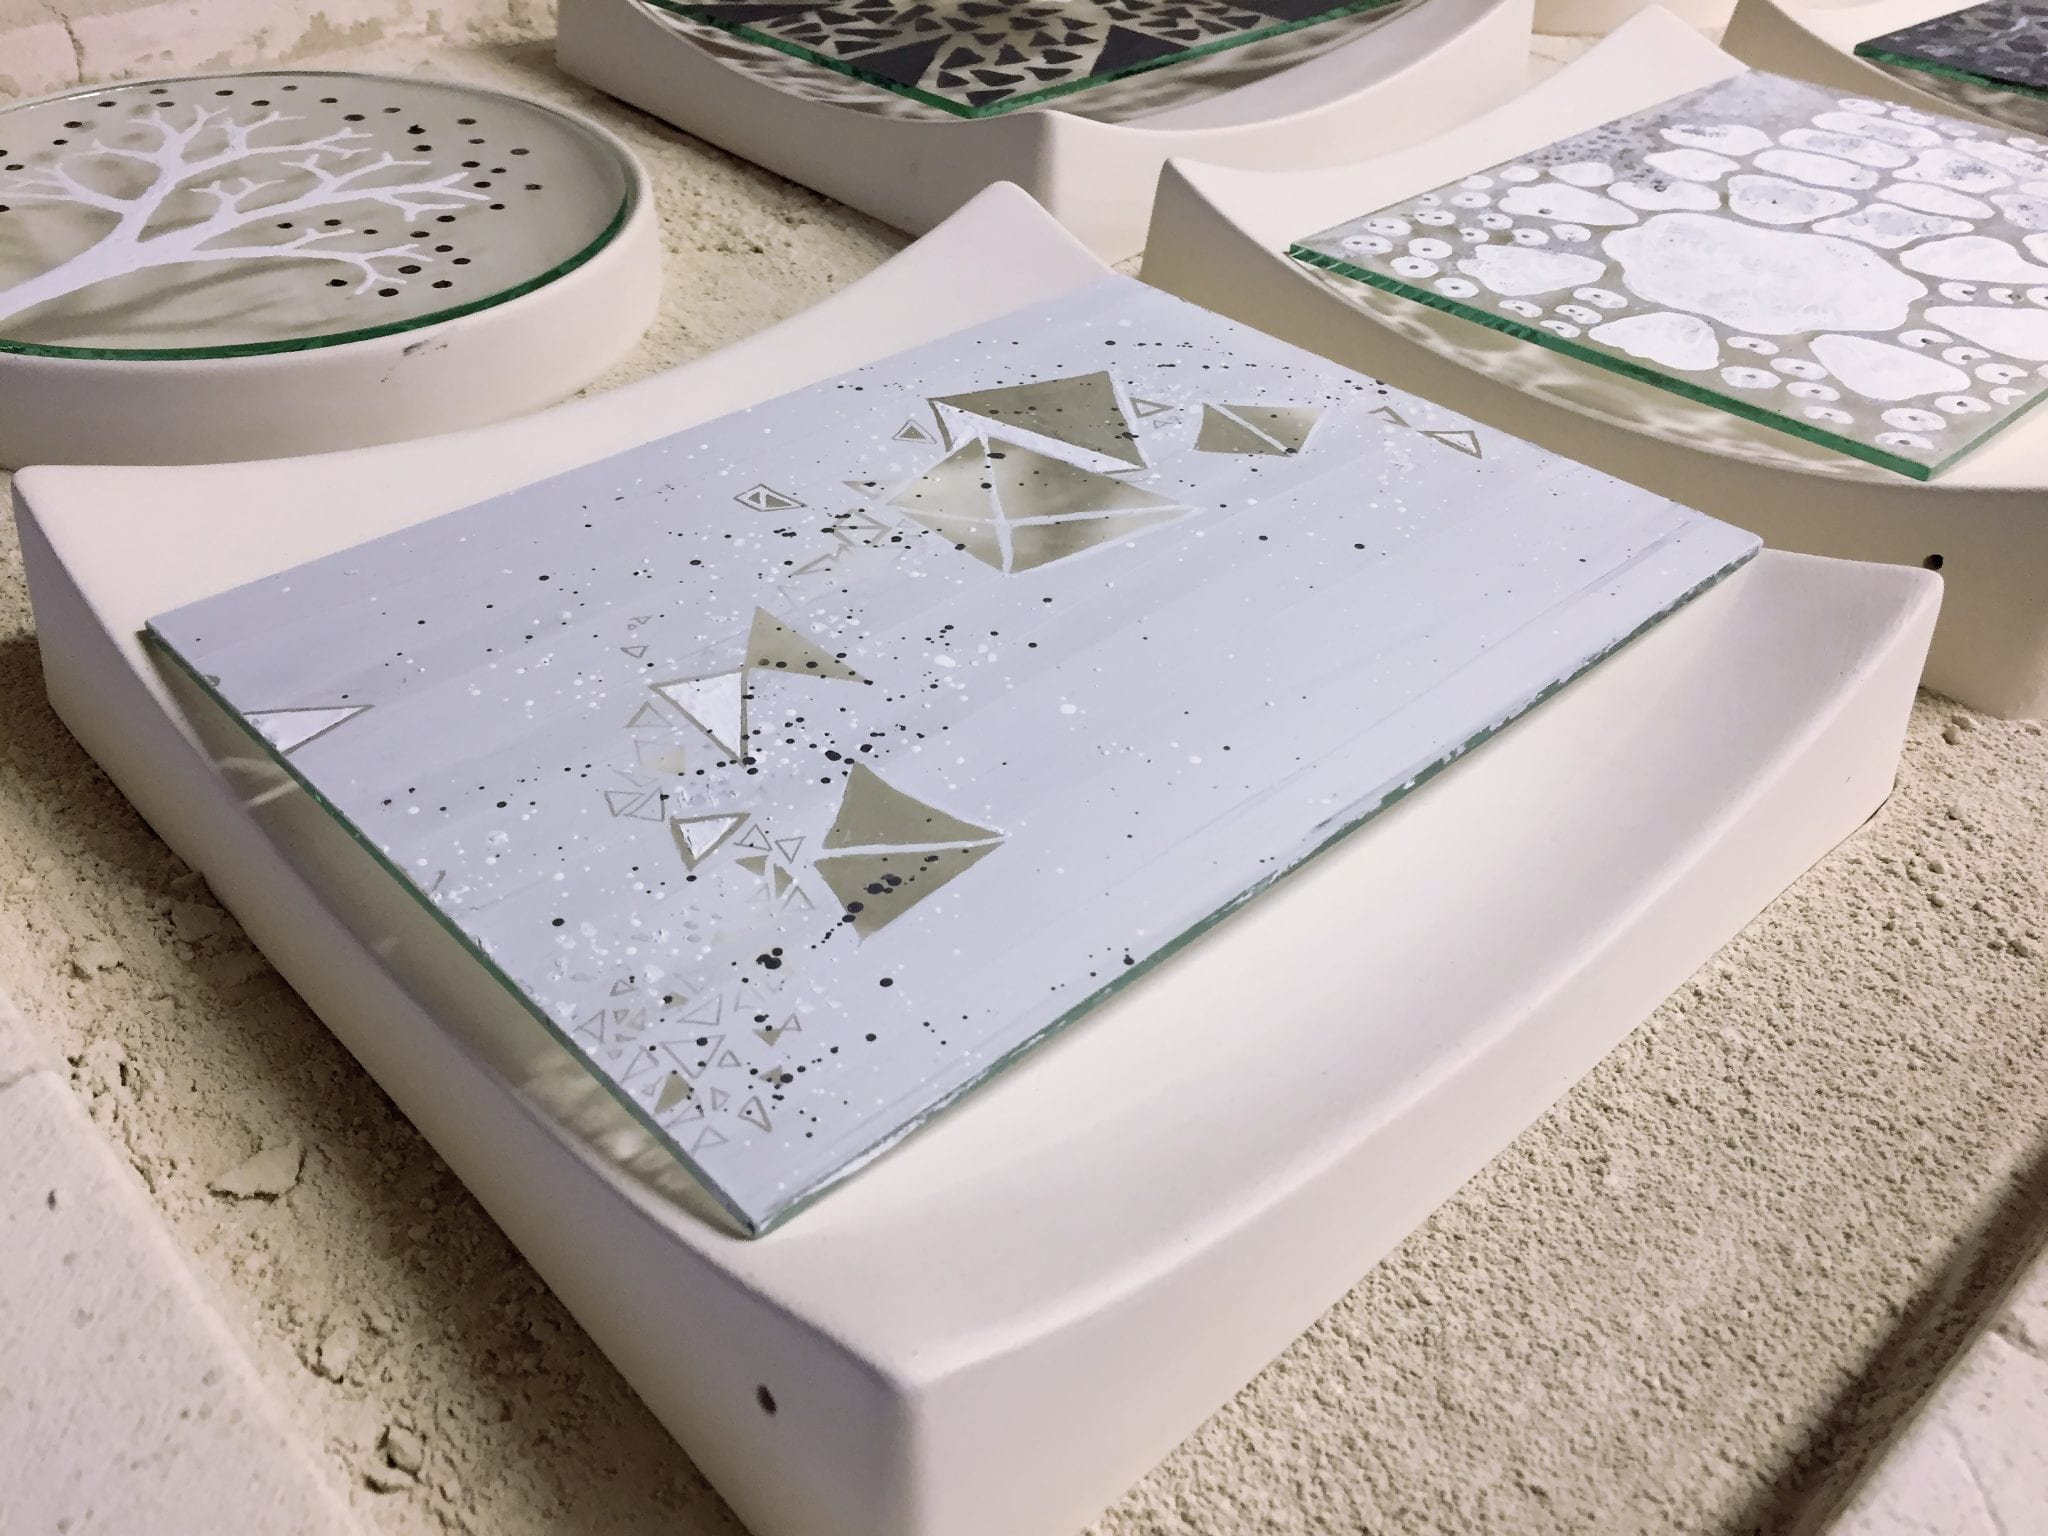 Glass plates in the kiln